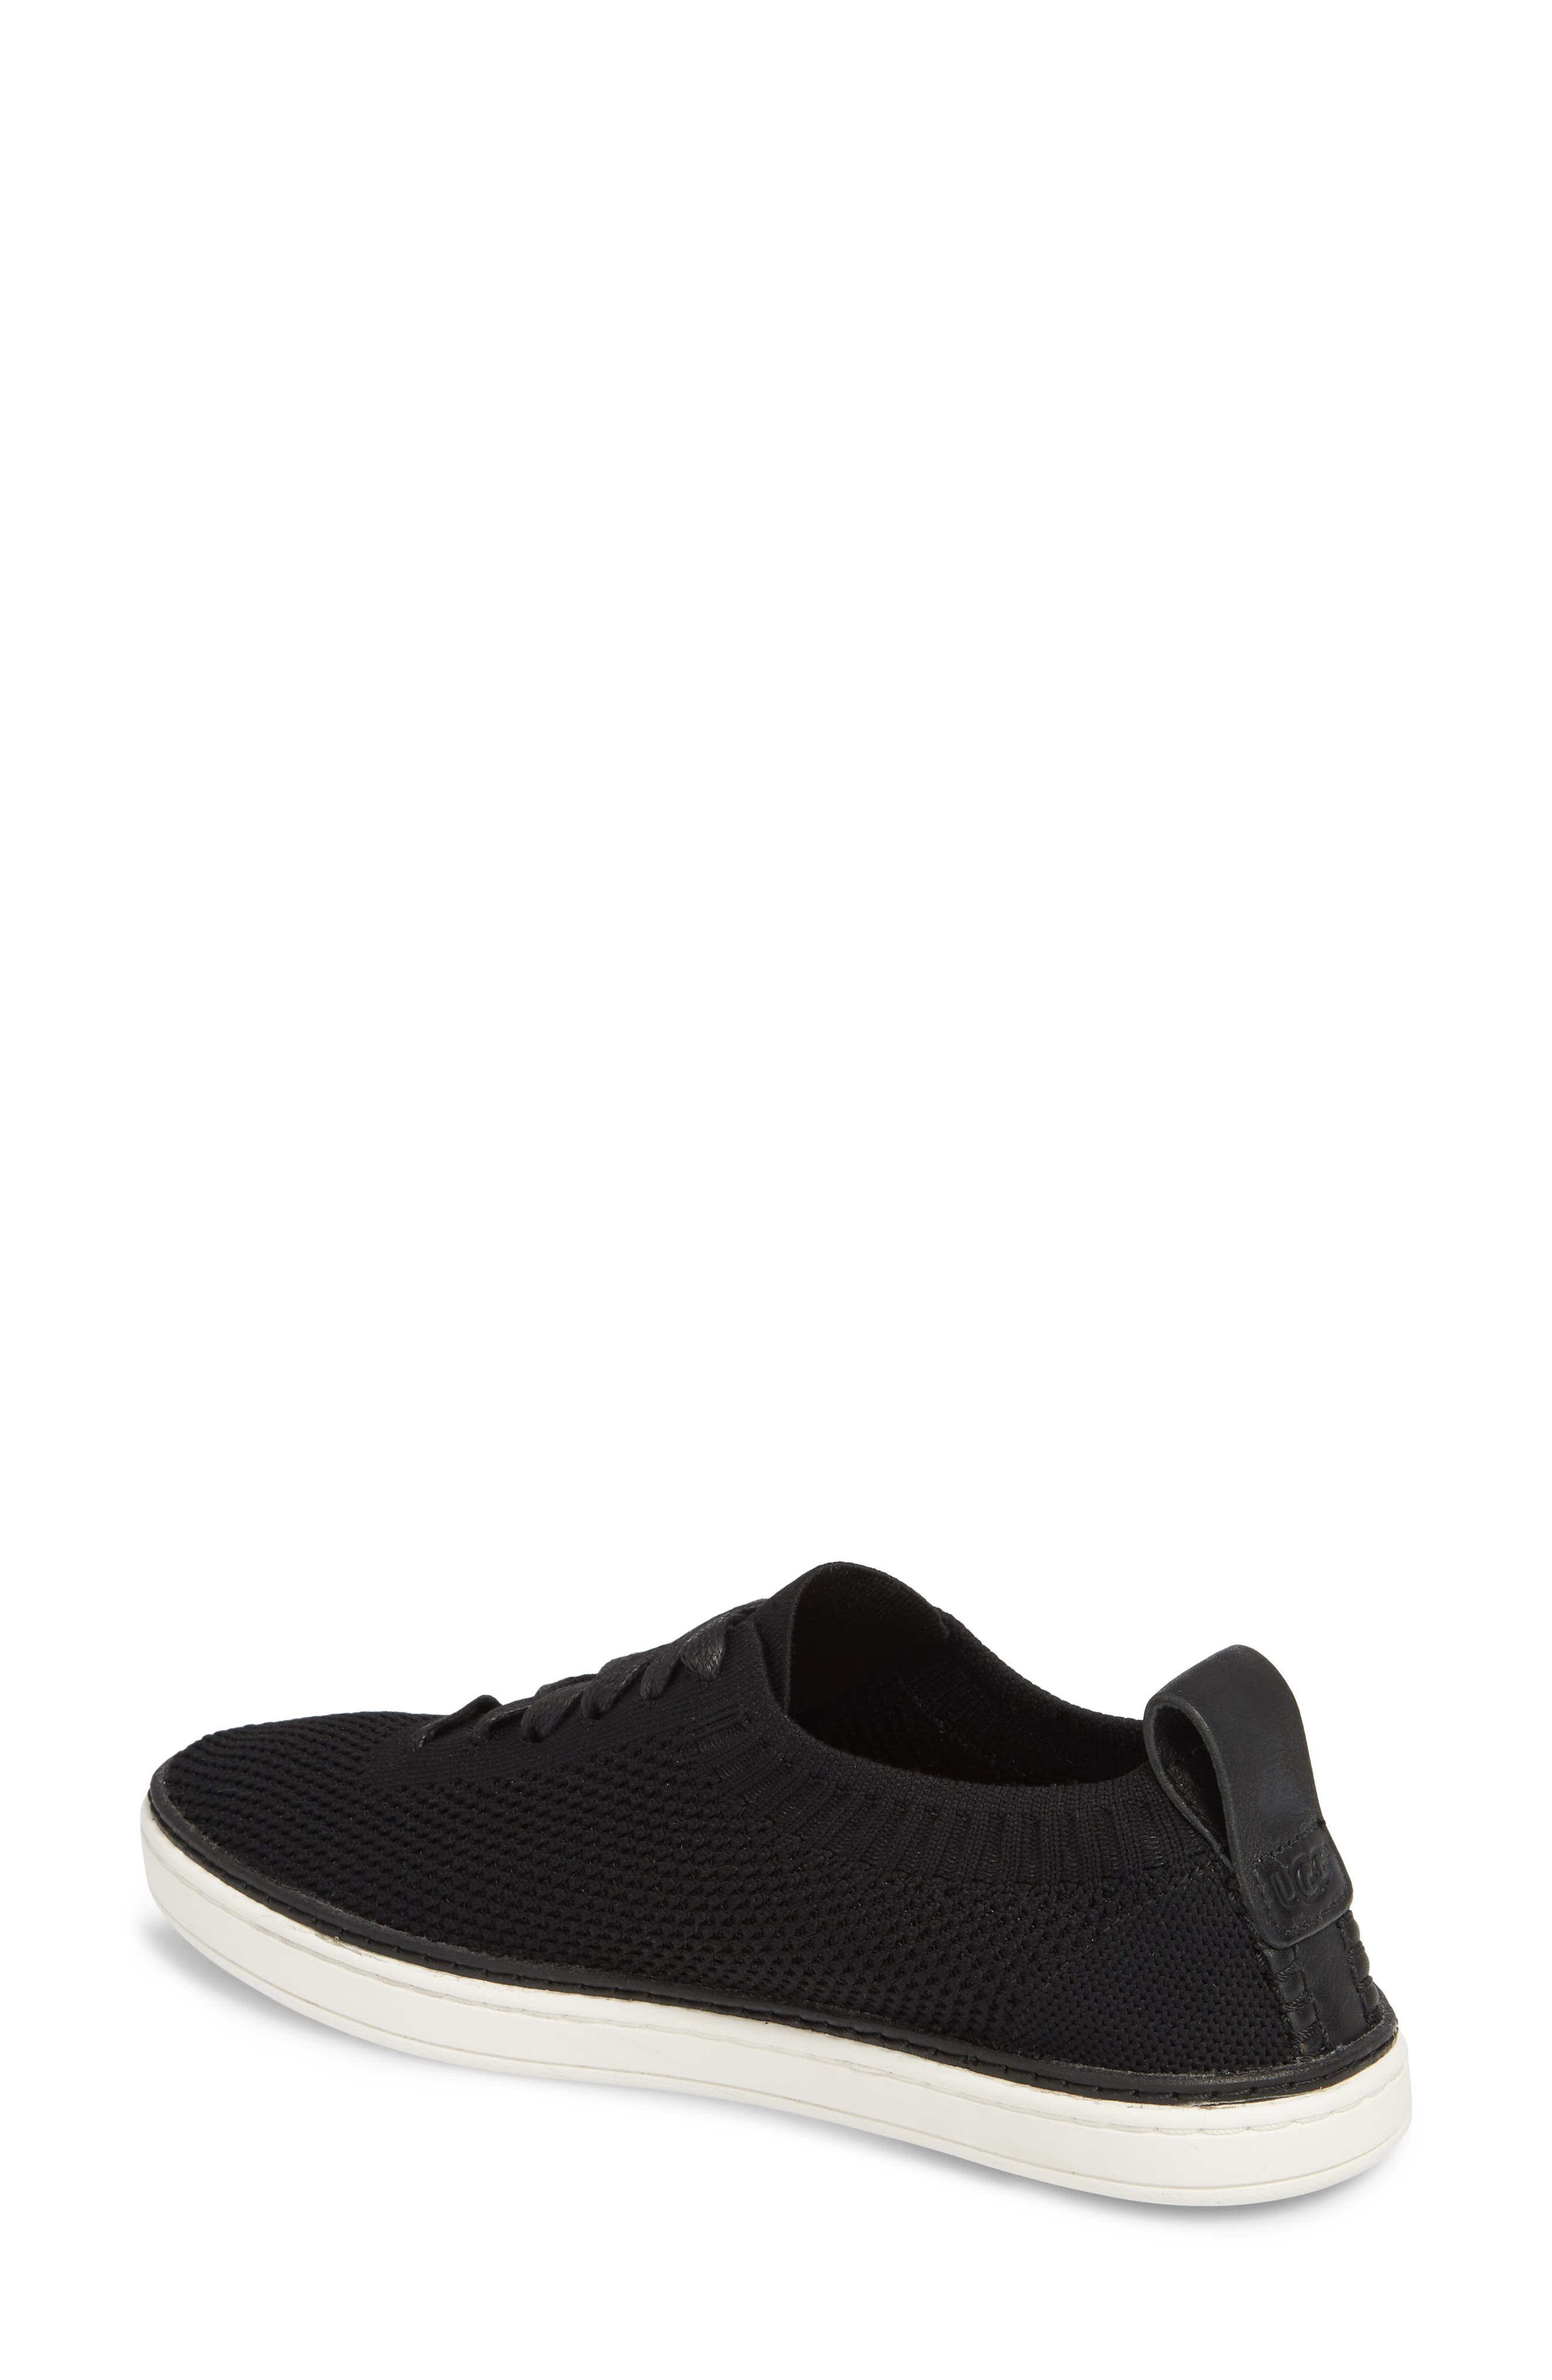 UGG<SUP>®</SUP>, Sidney Sneaker, Alternate thumbnail 2, color, BLACK FABRIC